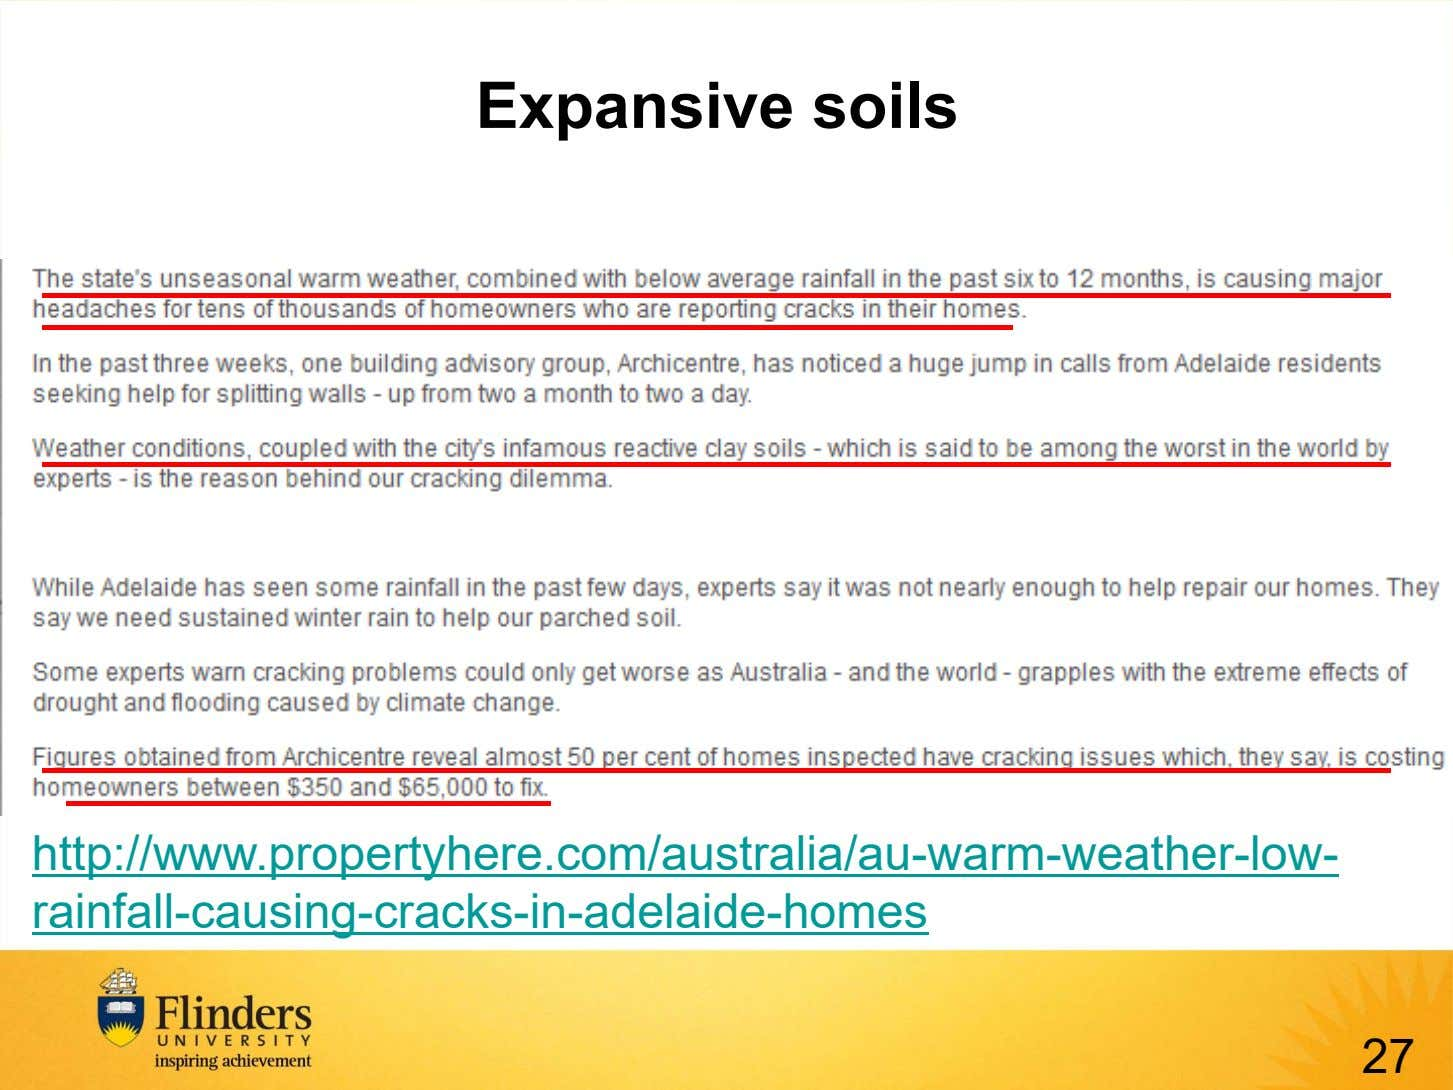 Expansive soils http://www.propertyhere.com/australia/au-warm-weather-low- rainfall-causing-cracks-in-adelaide-homes 27